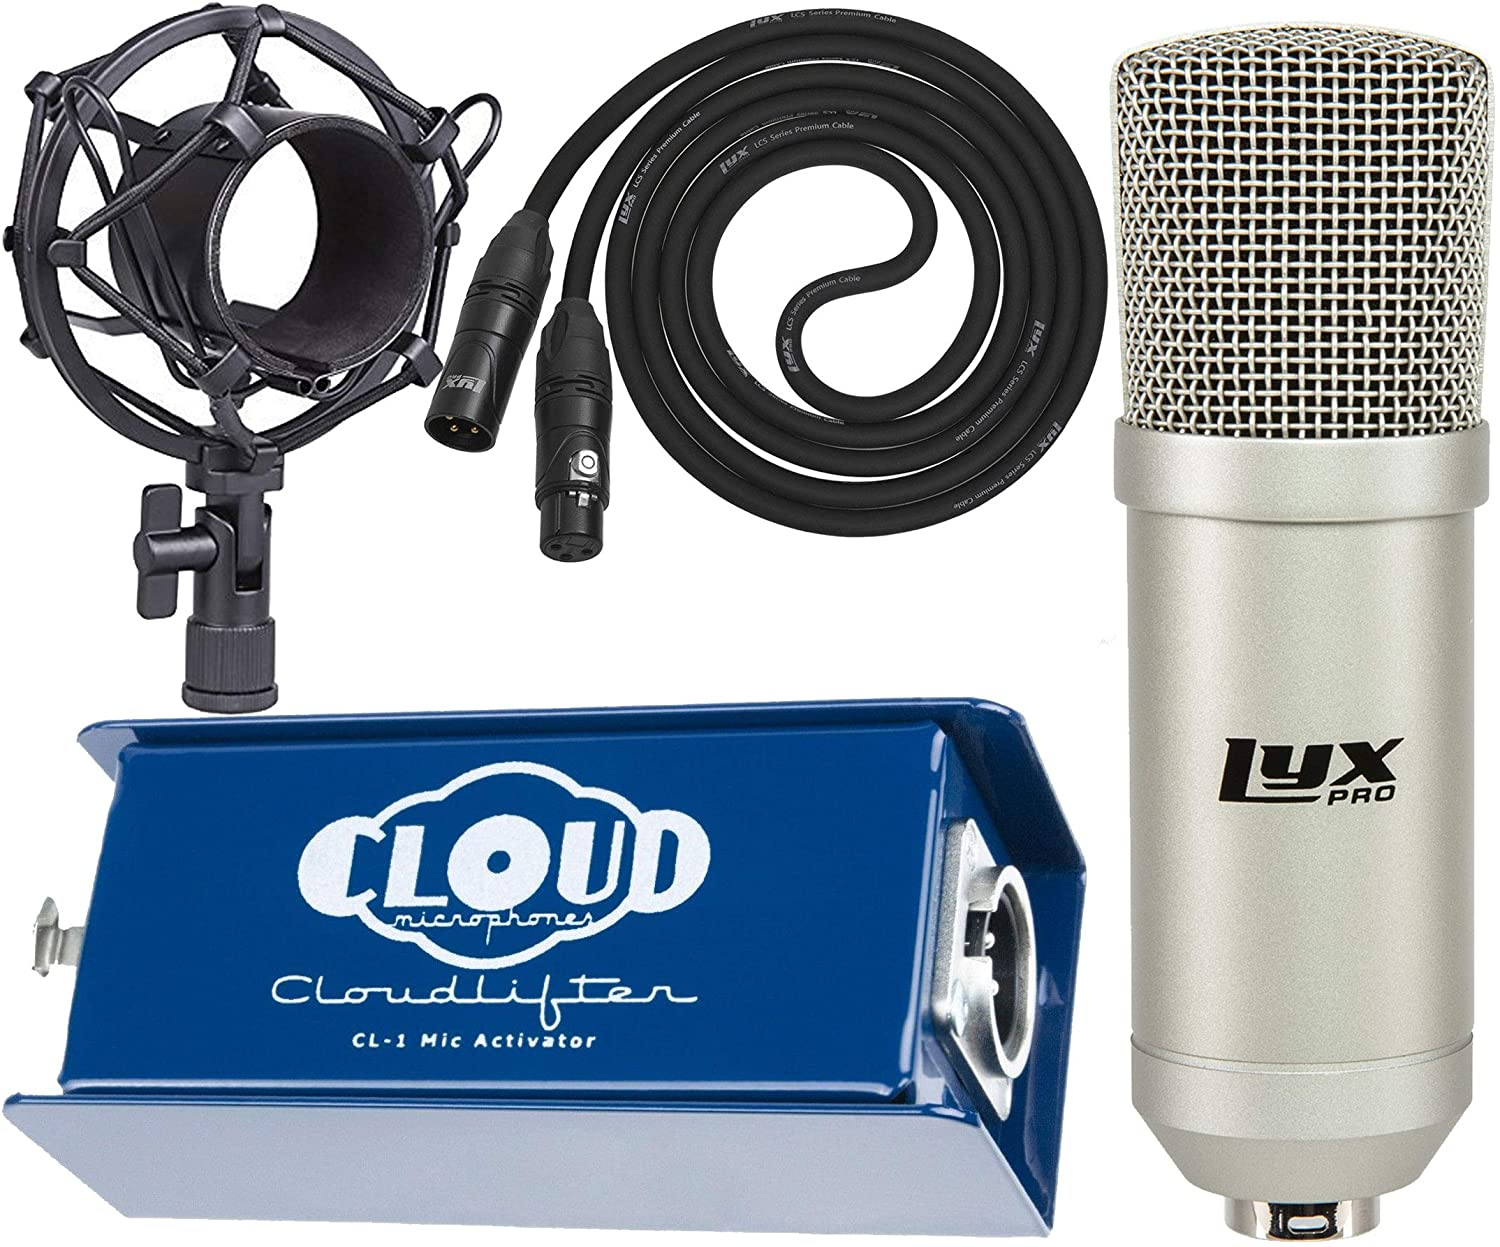 LyxPro Condenser Microphone for Studio, Vocals, Instruments, Podcasting and Professional Recordings with Cloud Cloudlifter CL-1 Microphone Activator/Preamplifier and Shockmount, XLR Cable,